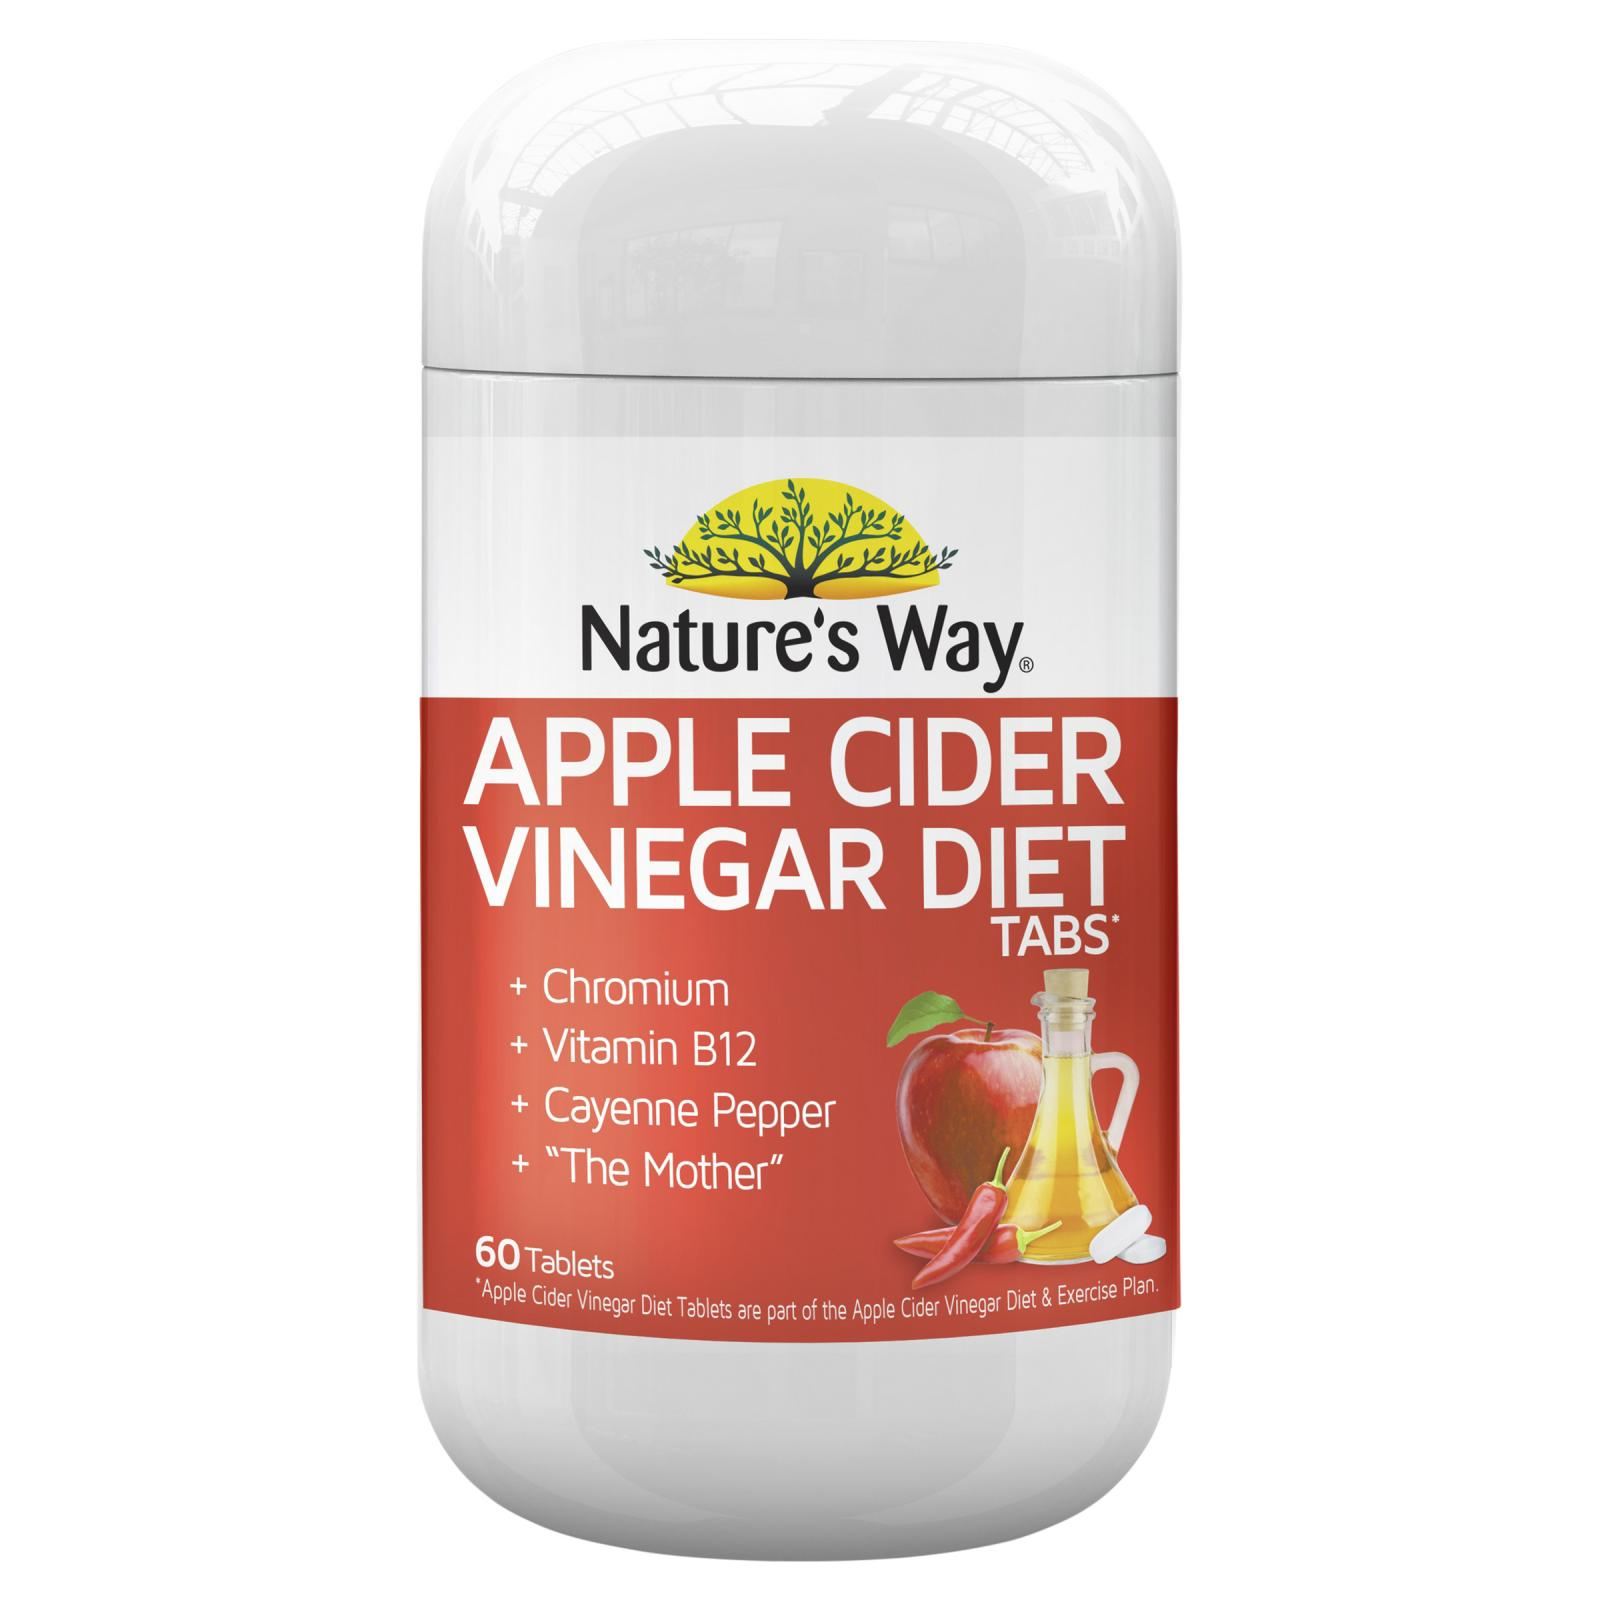 Details About Natures Way Apple Cider Vinegar Diet Tablets 60 Burn Fat Metabolism Weight Loss